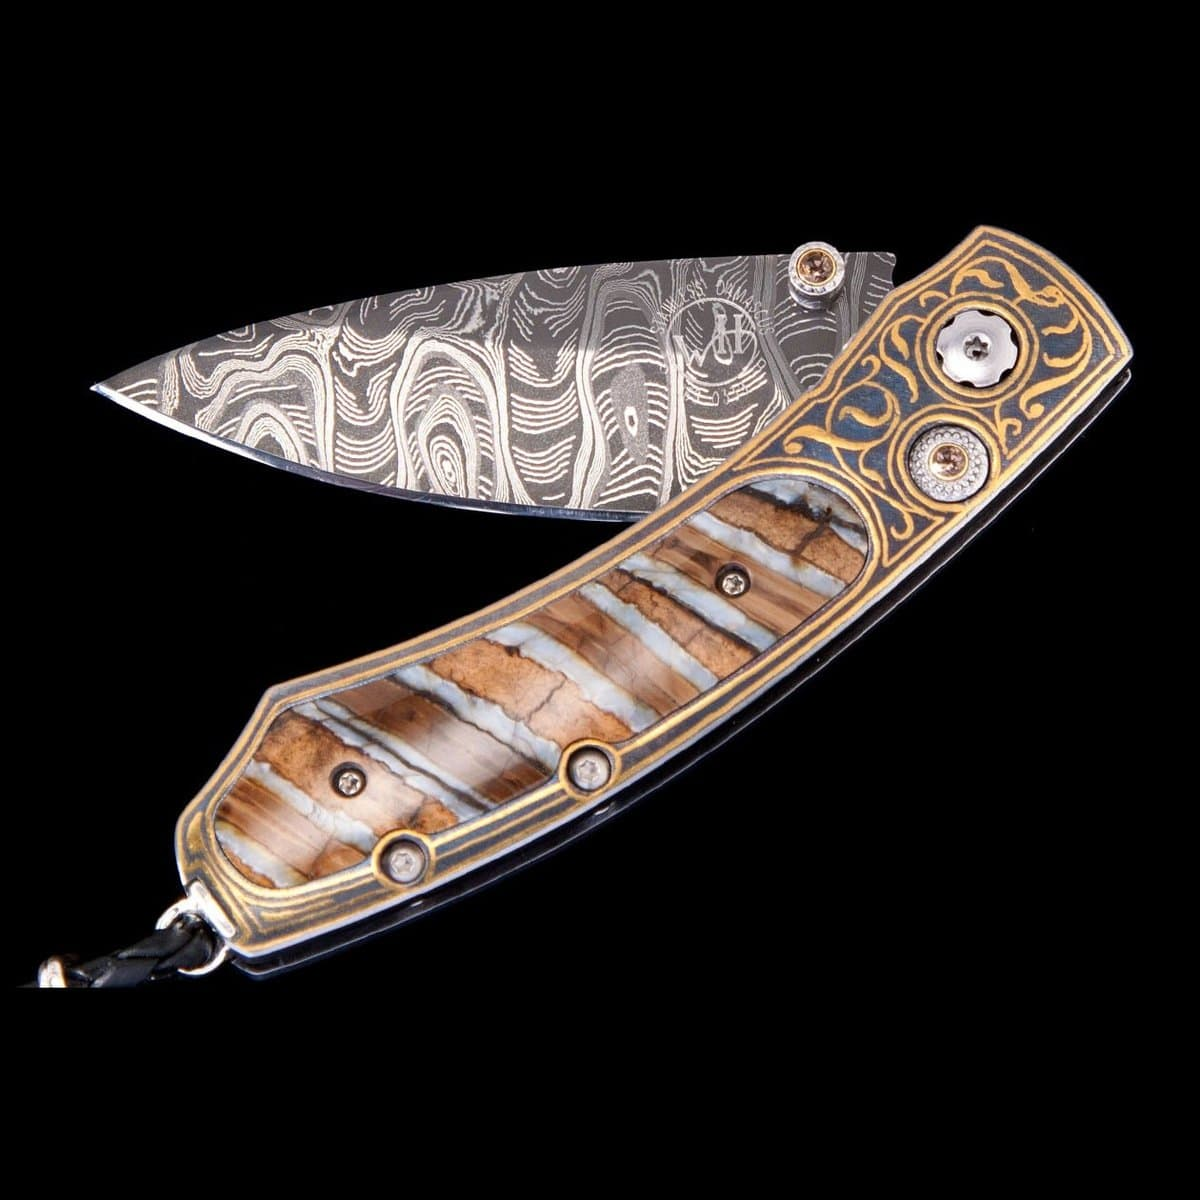 Kestrel 'Destiny' Limited Edition Knife - B09 'DESTINY'-William Henry-Renee Taylor Gallery